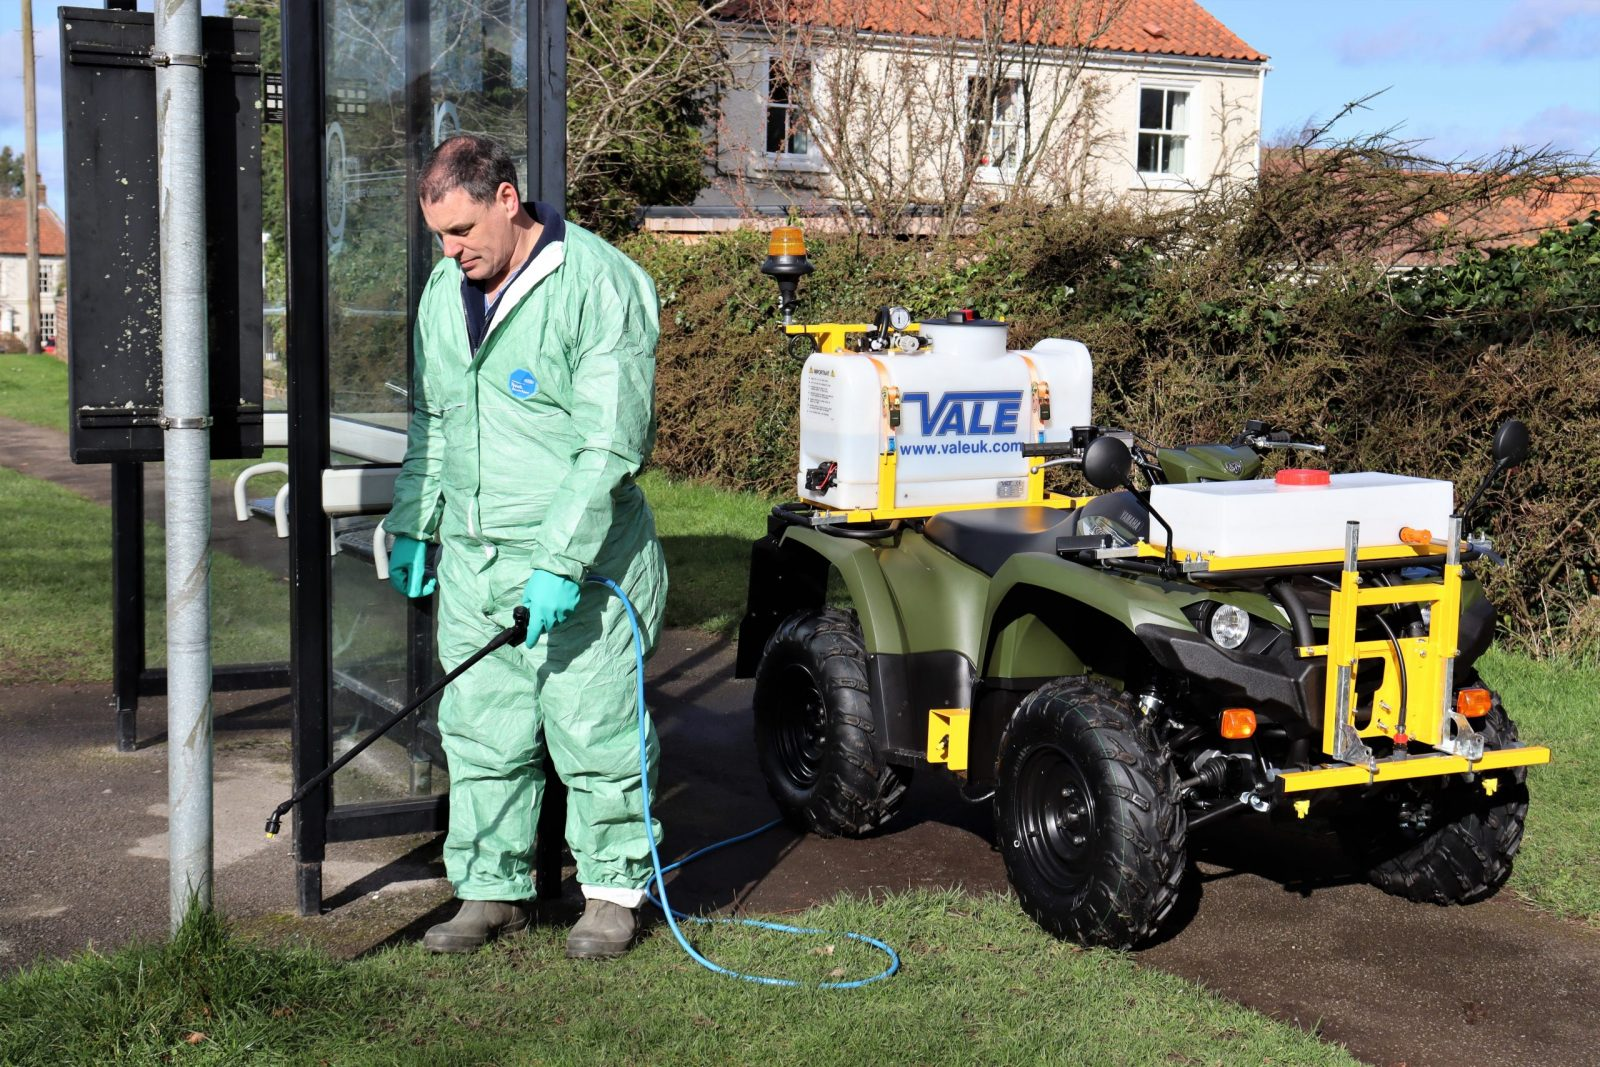 VALE Engineering's PKL450 ATV quad bike mounted weed sprayer is generally considered to be one of the most robust and reliable in the marketplace